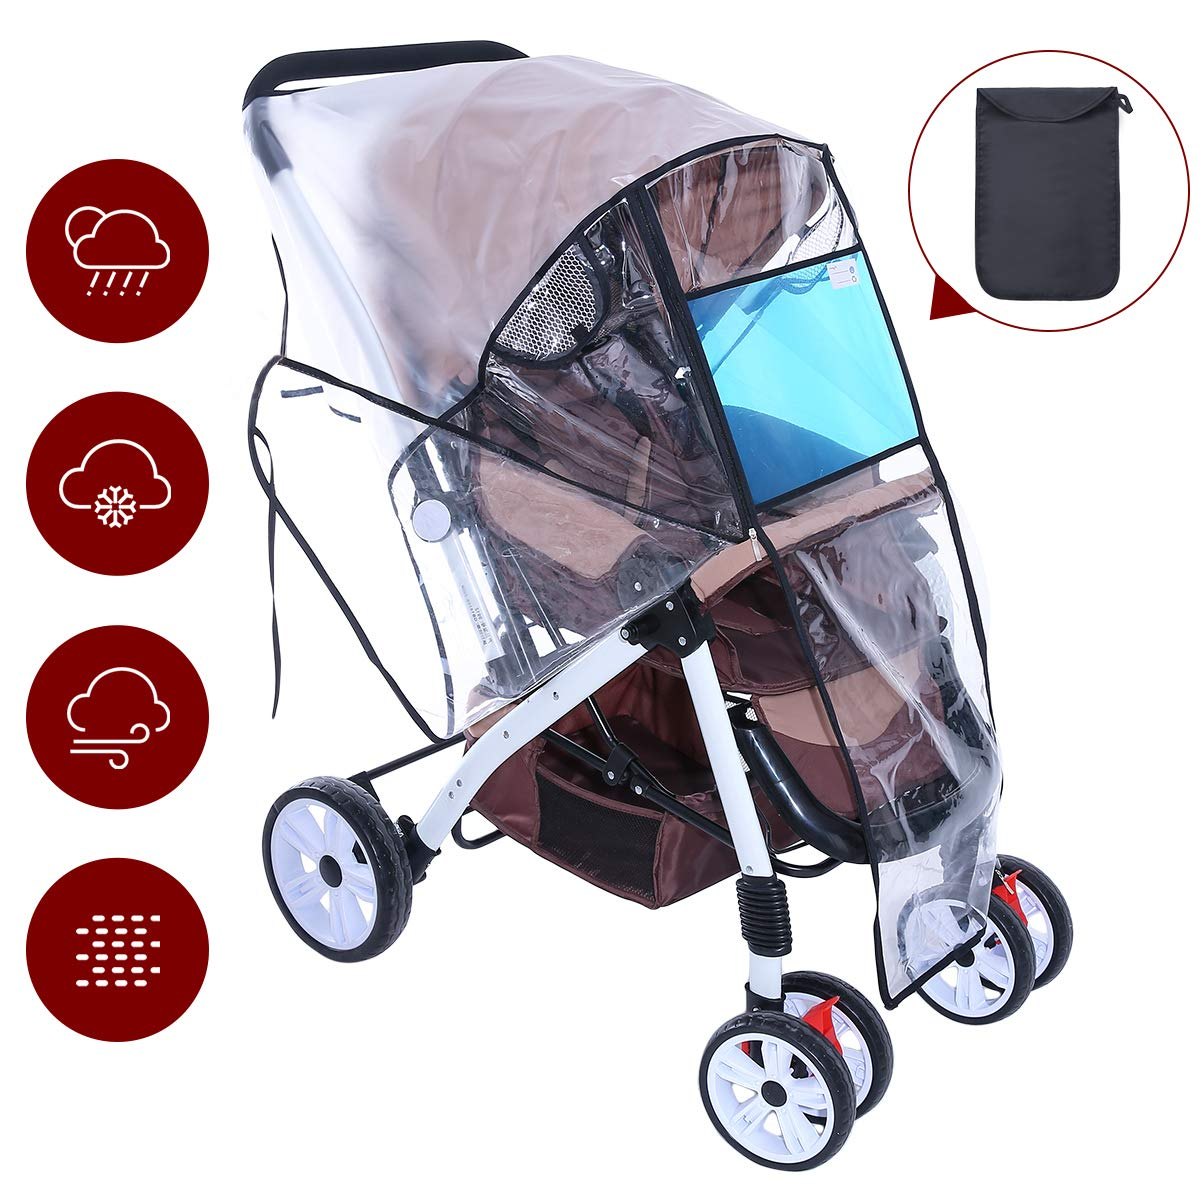 Hrzeem Stroller Rain Cover Stroller Cover Universal Baby Stroller Weather Shield with Storage Pouch EVA Clear Zip Front Opening Waterproof Windproof Protection Easy to Install for Outdoor Use (Black) by Hrzeem (Image #1)